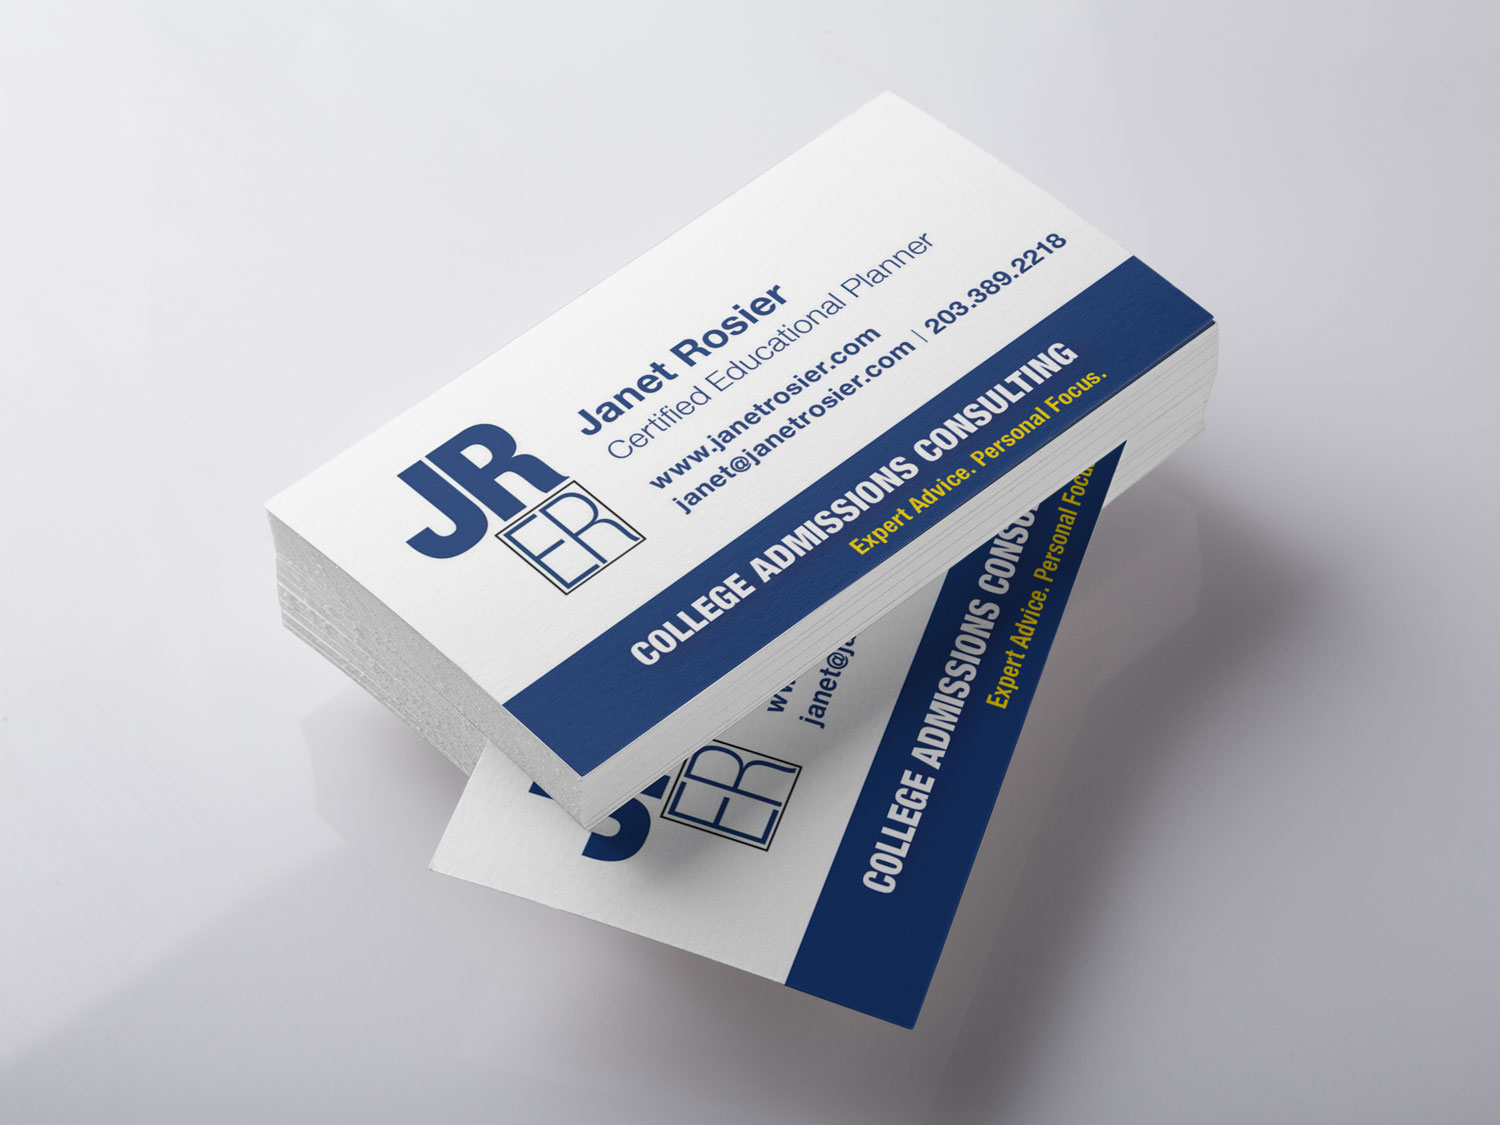 Janet Rosier Educational Resources business card